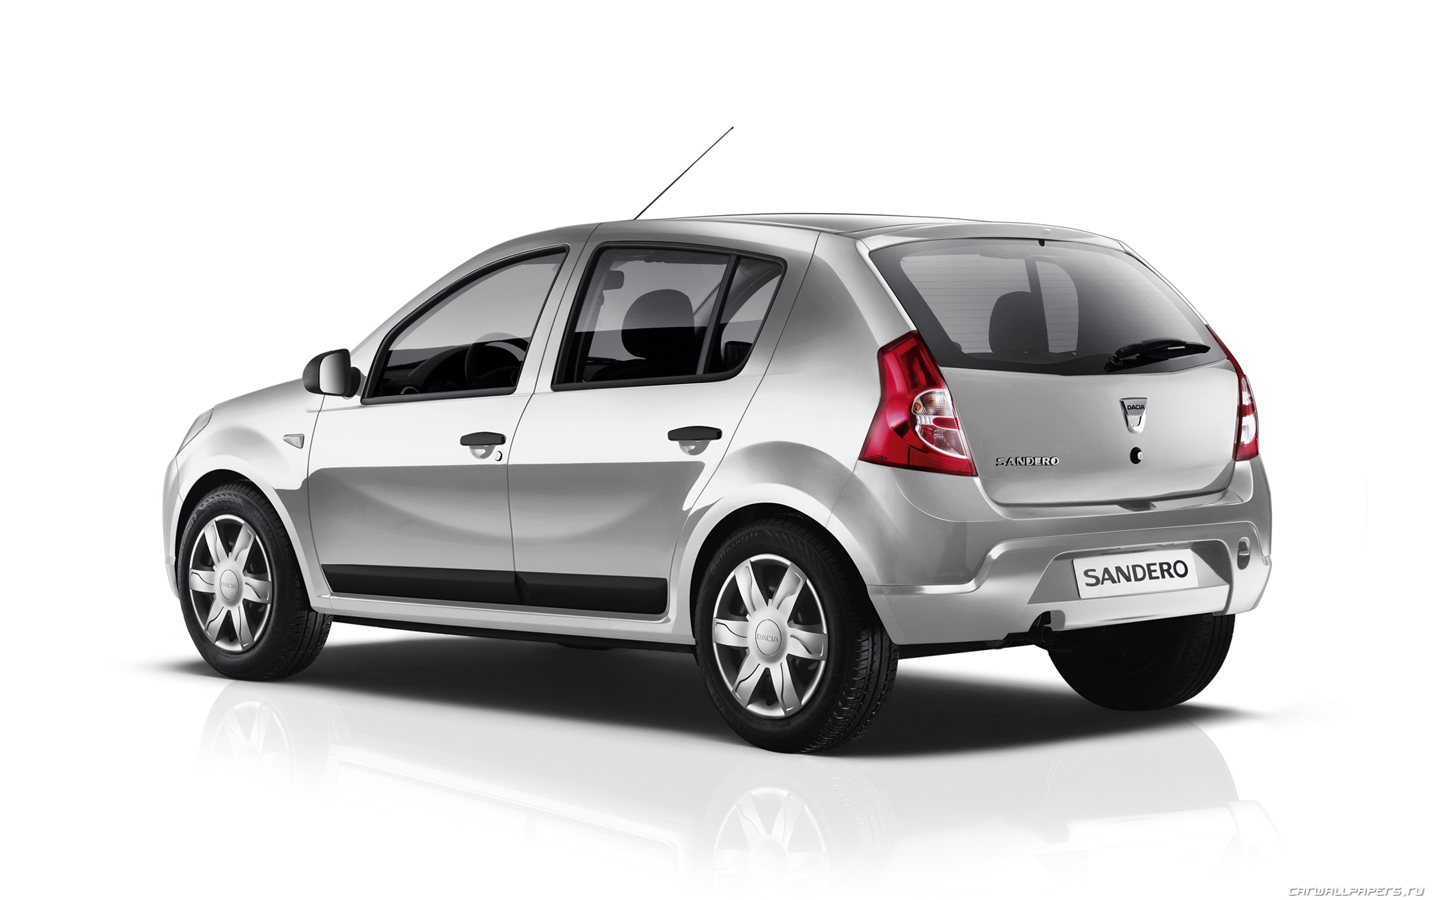 2011 dacia sandero photos informations articles. Black Bedroom Furniture Sets. Home Design Ideas